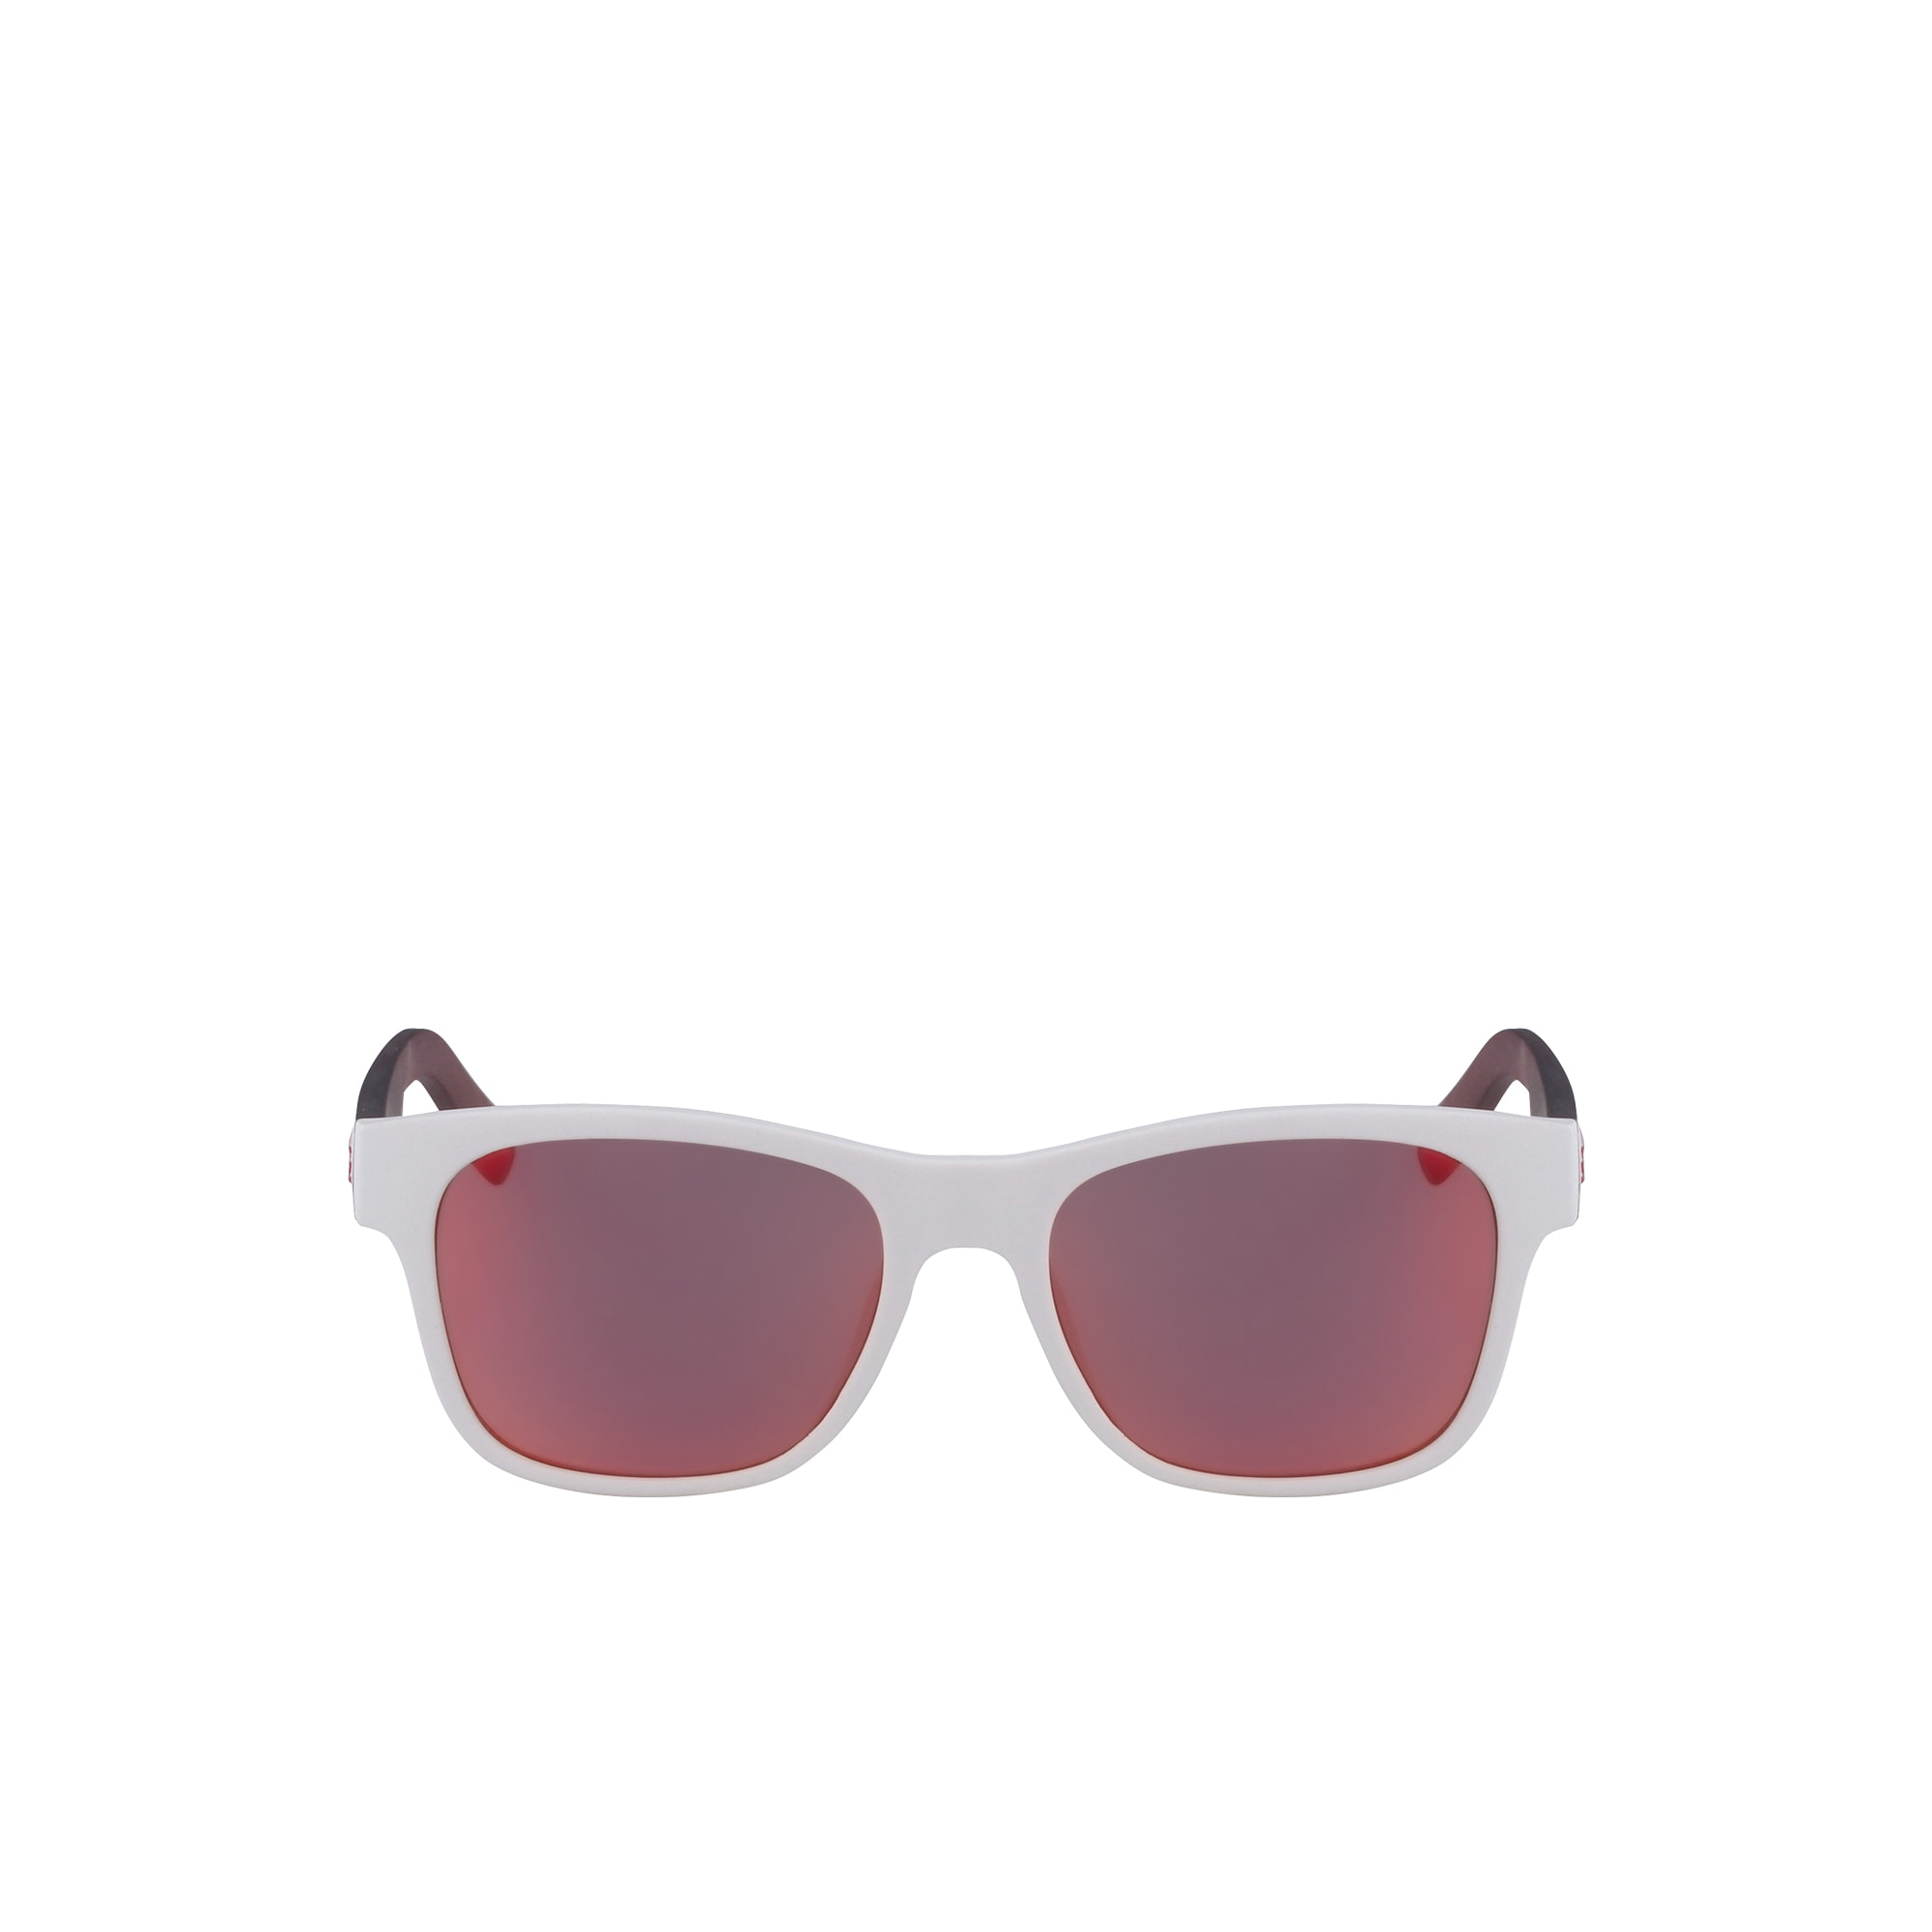 Plastic Color Block - Fan Sunglasses